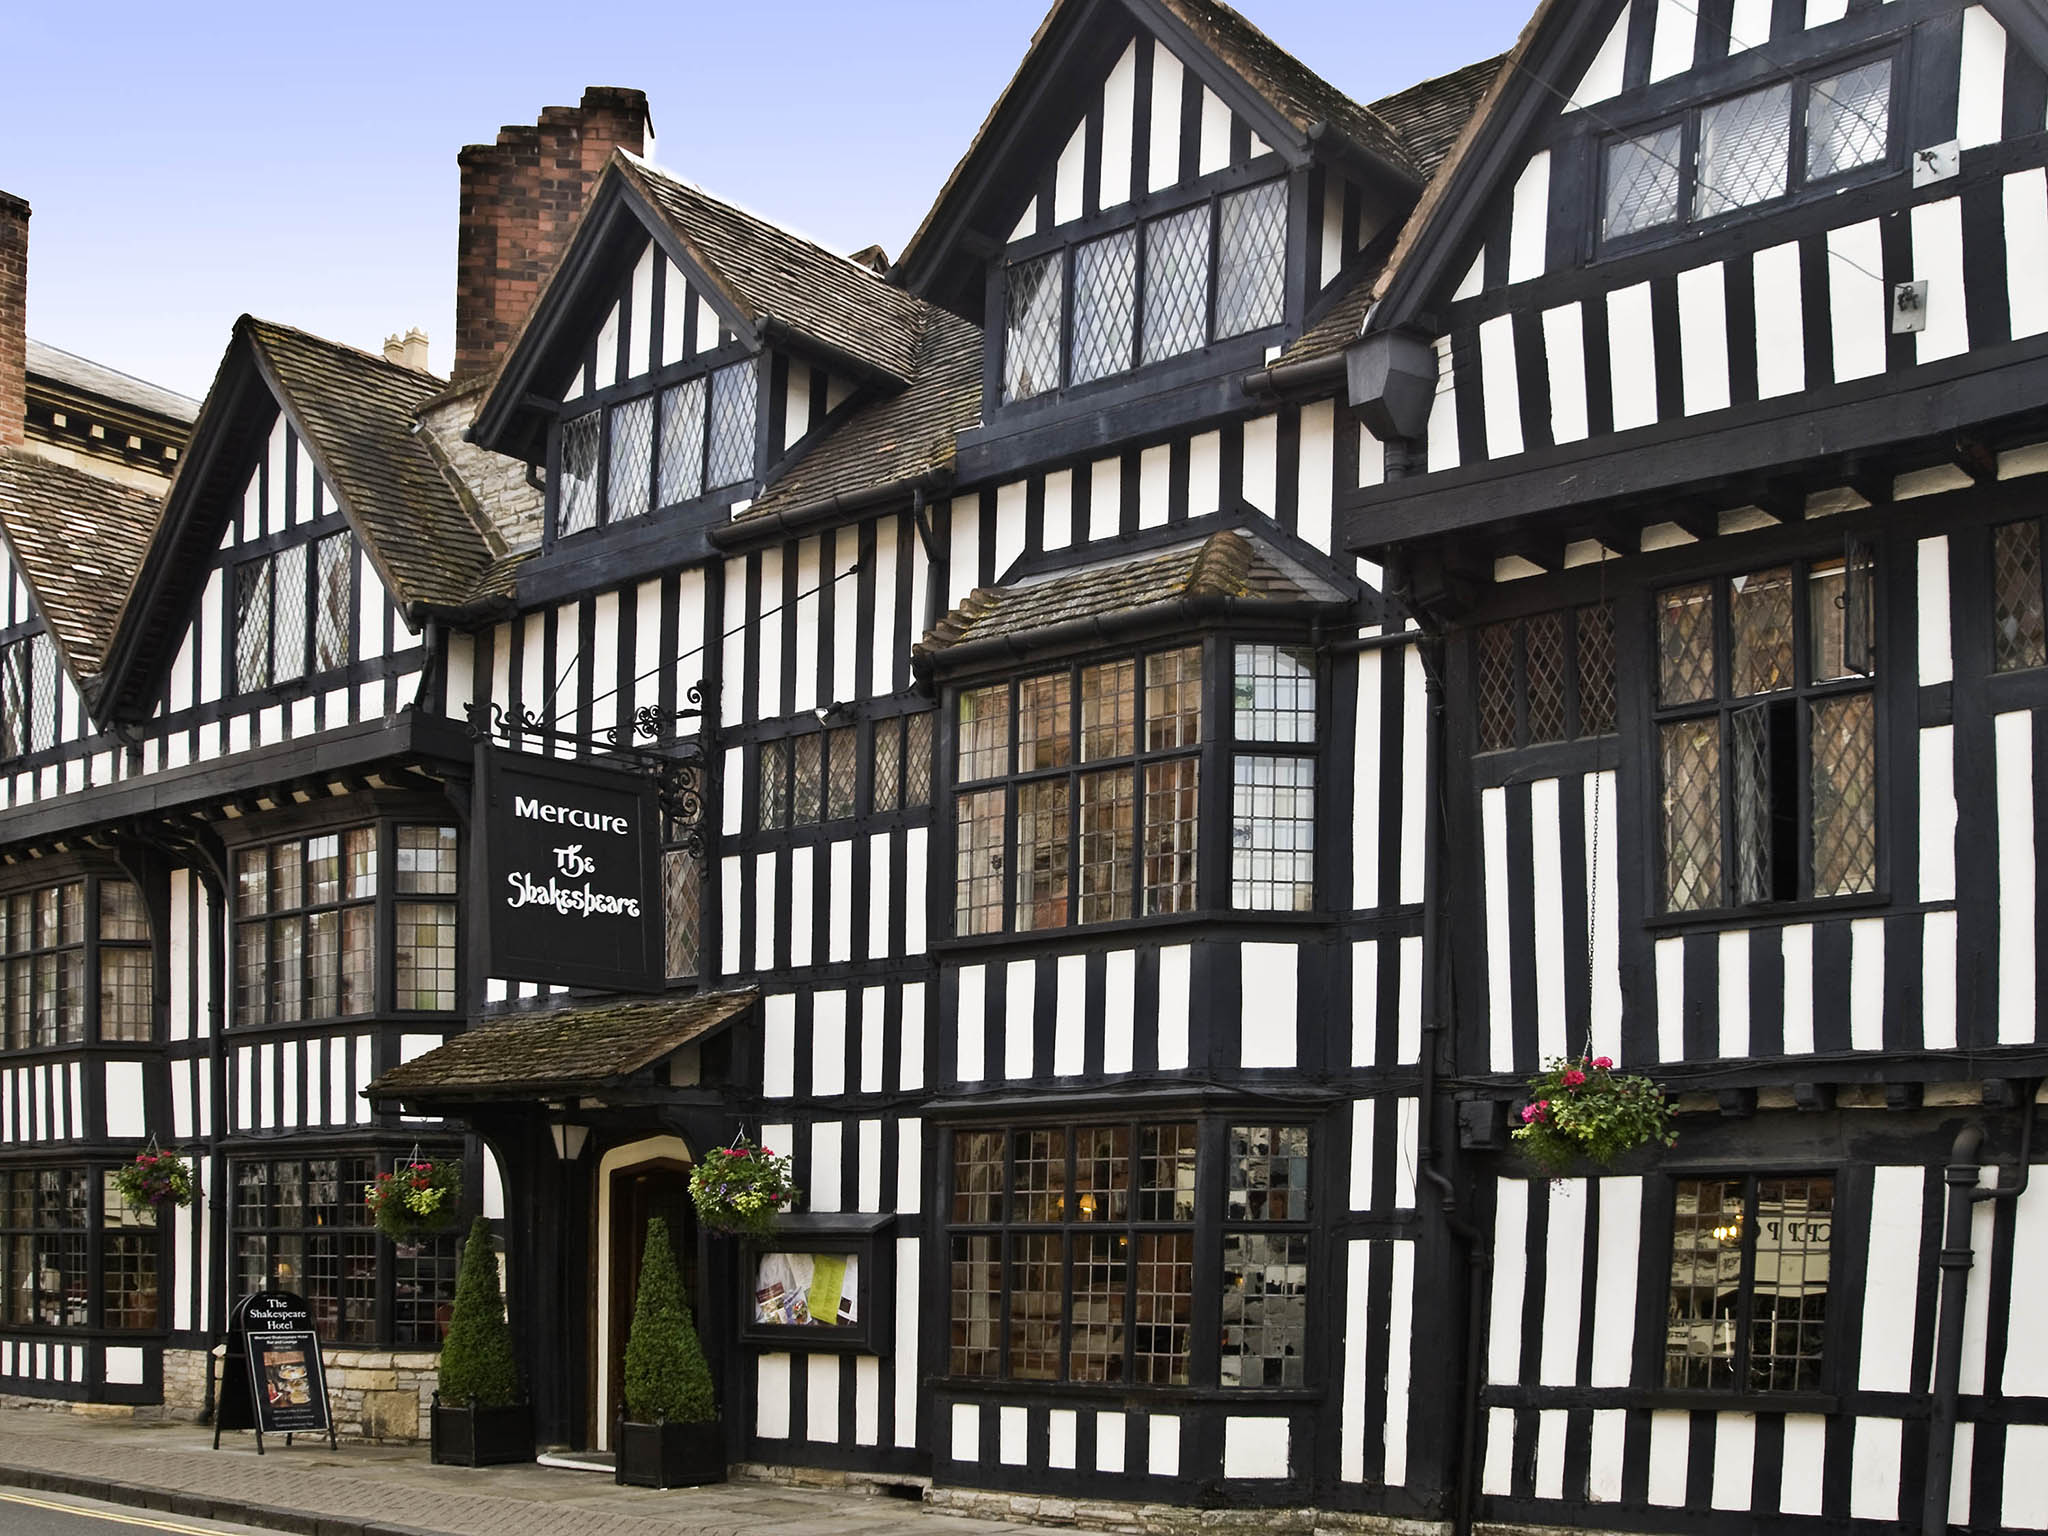 Отель — Mercure Stratford upon Avon Shakespeare Hotel